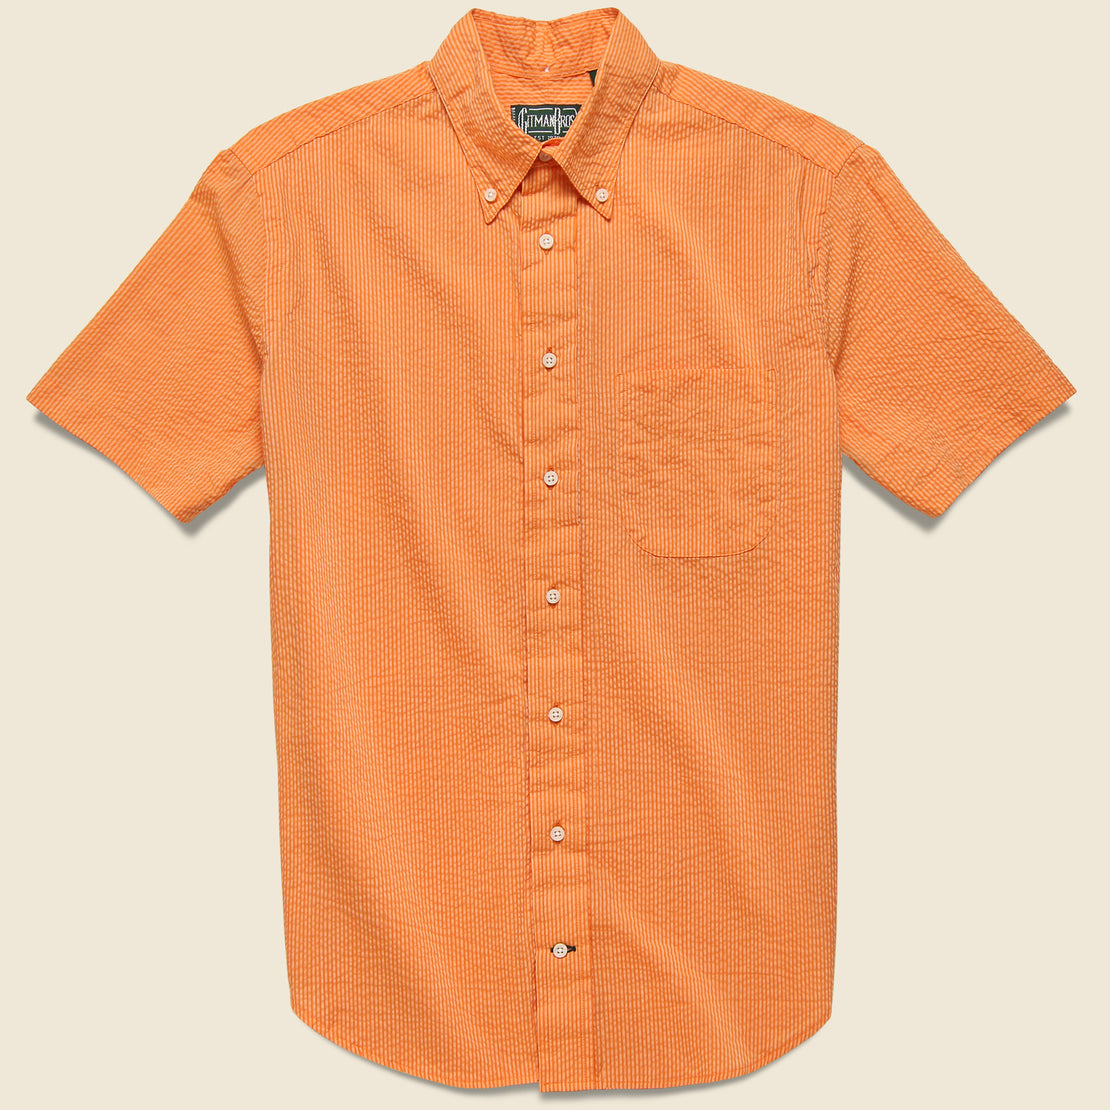 Gitman Vintage Neon Stripe Seersucker Oxford Shirt - Orange